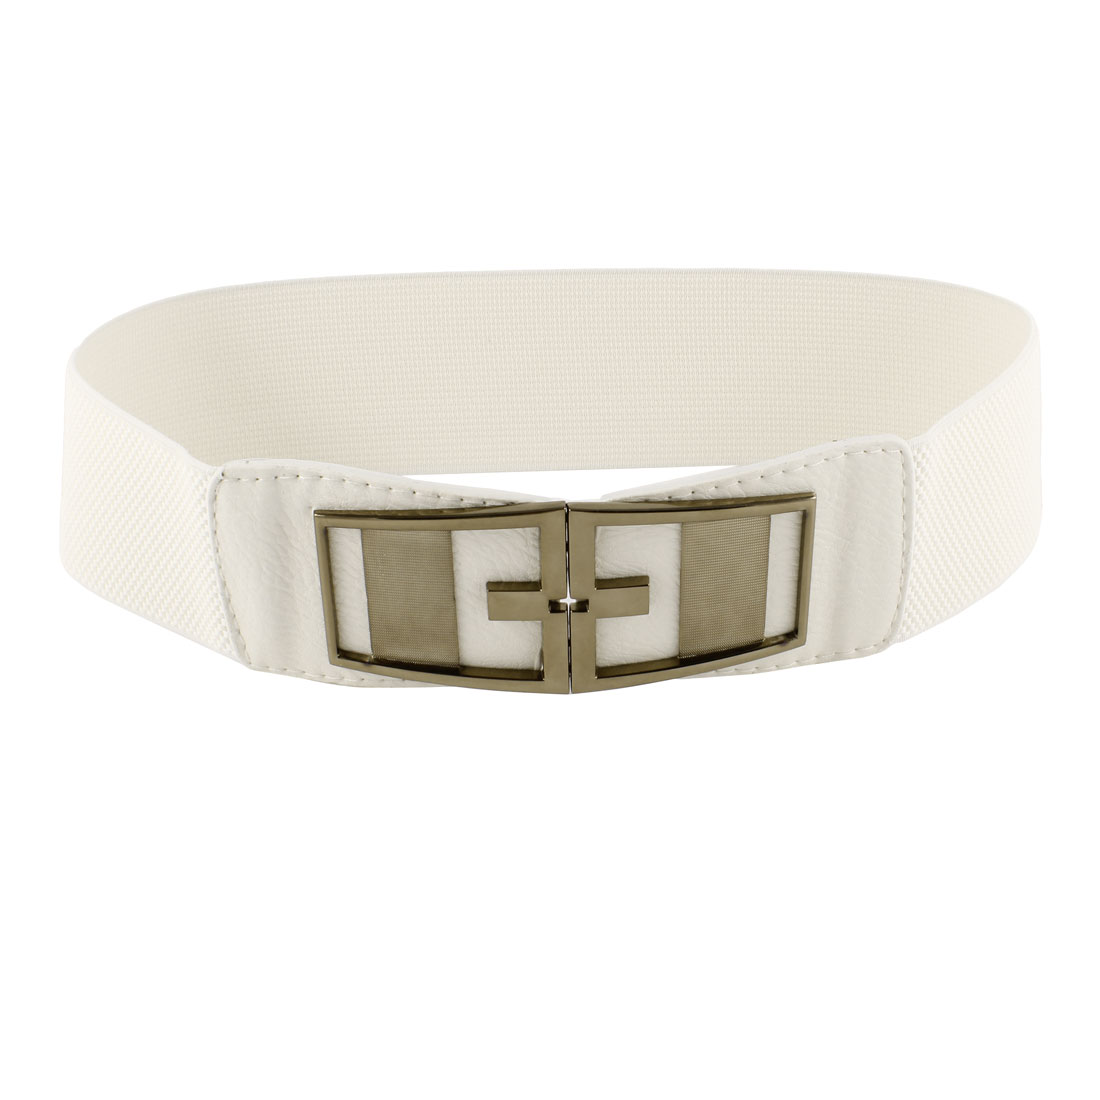 Symmetrical Interloack Bucle Textured Elastic Belt Off White for Ladies